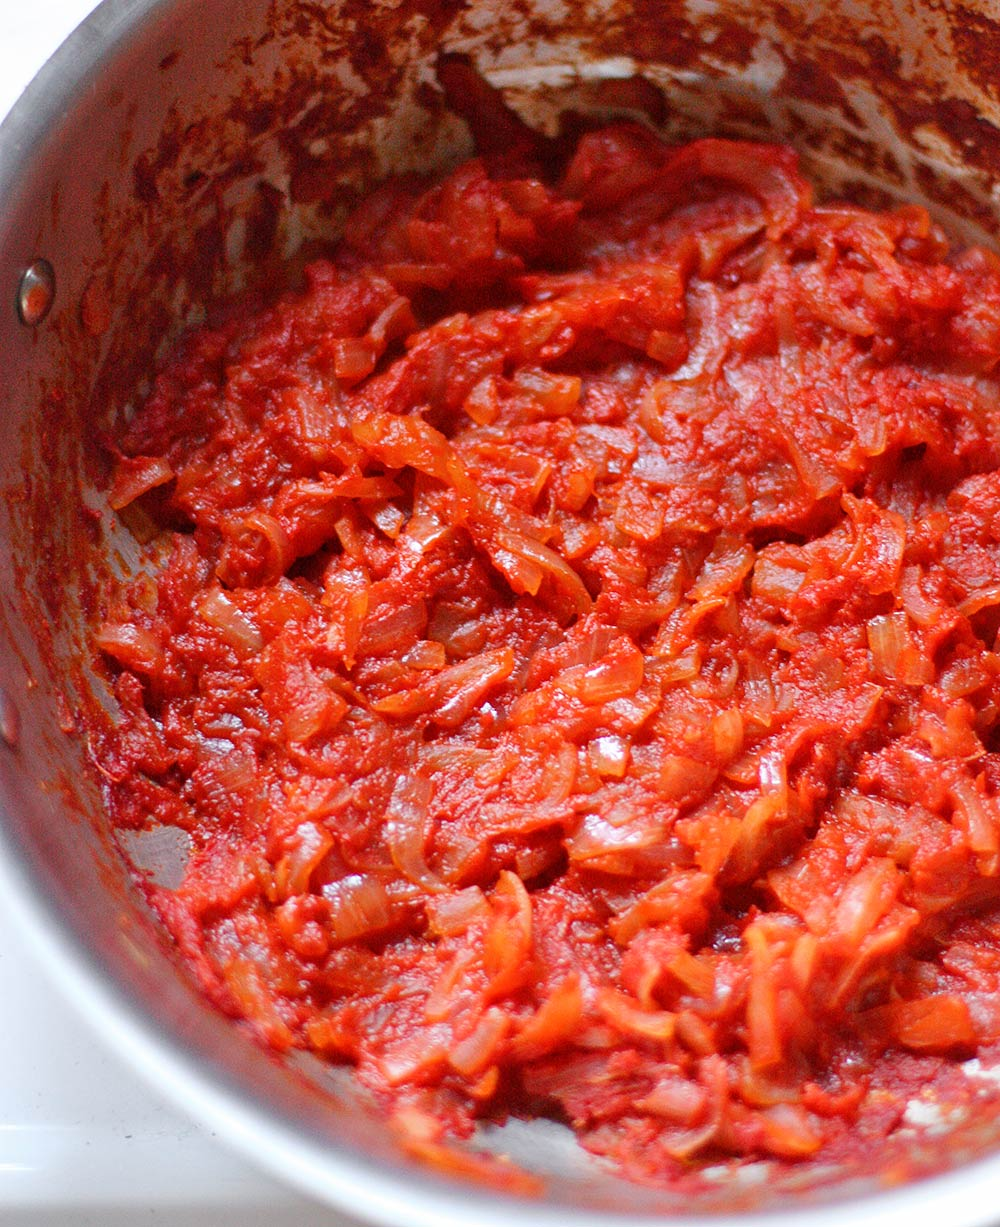 A magical mixture of tomatoes and onions, cooked low and slow until caramelized to sweet-savory perfection! Use in soups, stews, chilis, and more! Get the recipe for Caramelized Tomatoes and Onions at SoupAddict.com